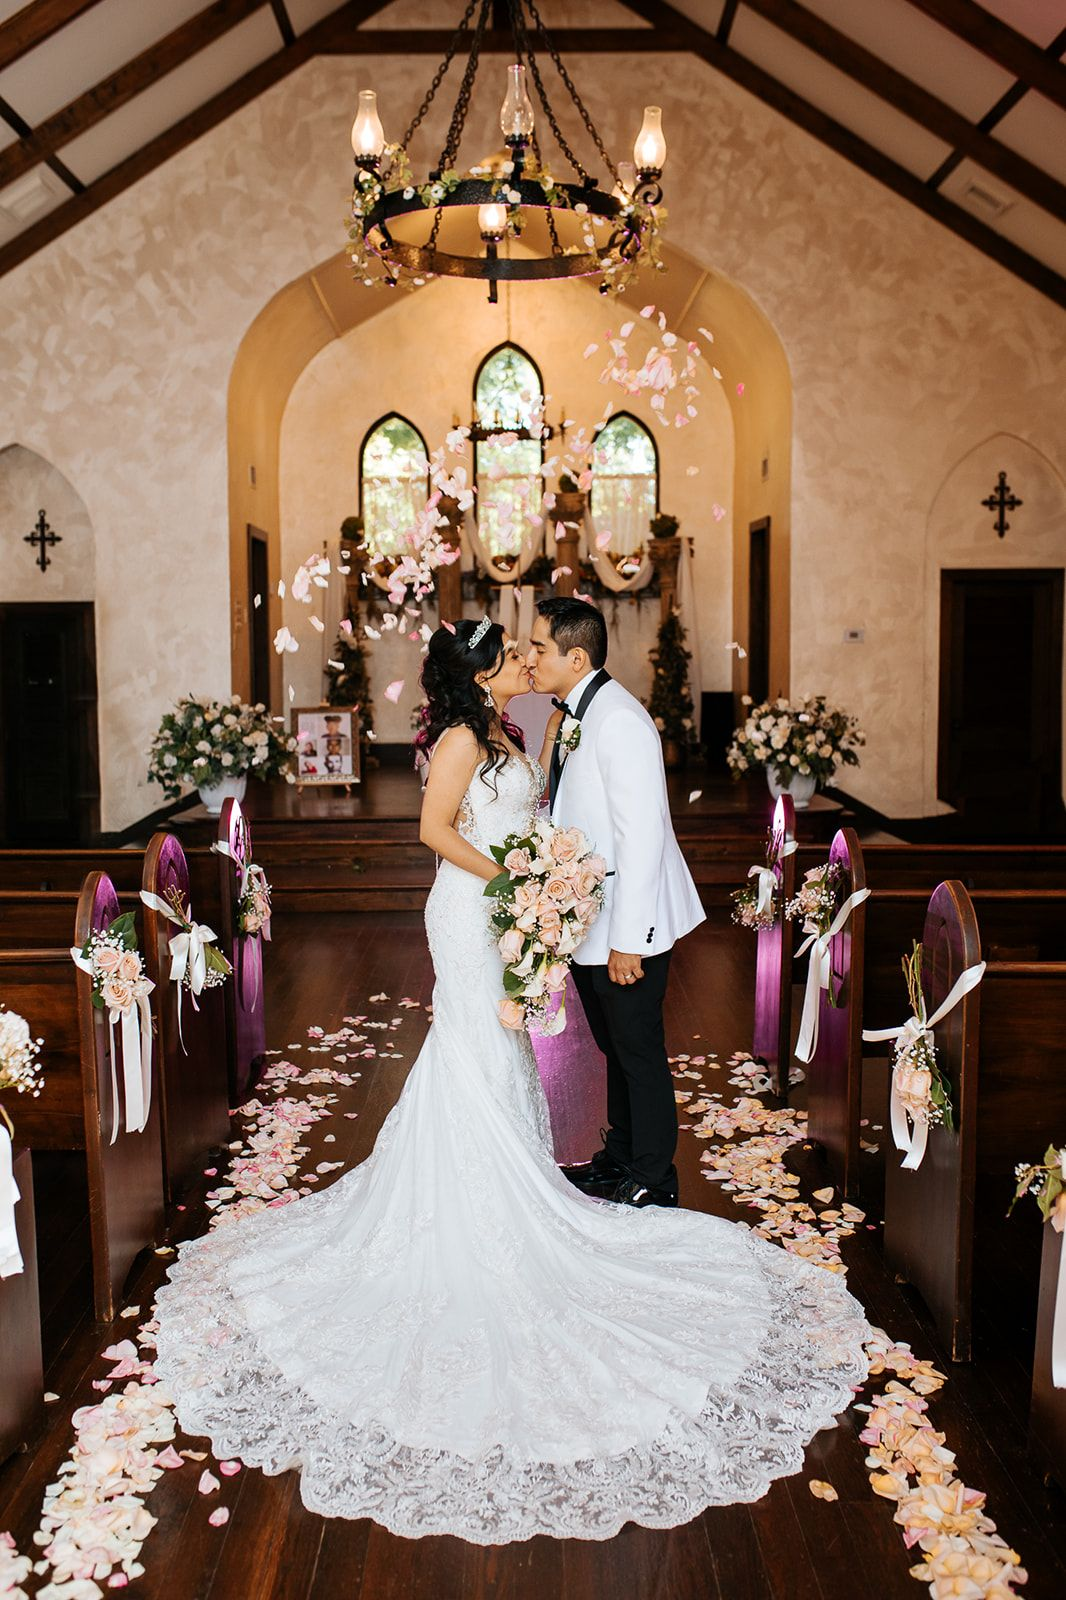 Spinelli S Wedding Venue Hill Country Wedding Venues Chapel Wedding Hill Country Wedding